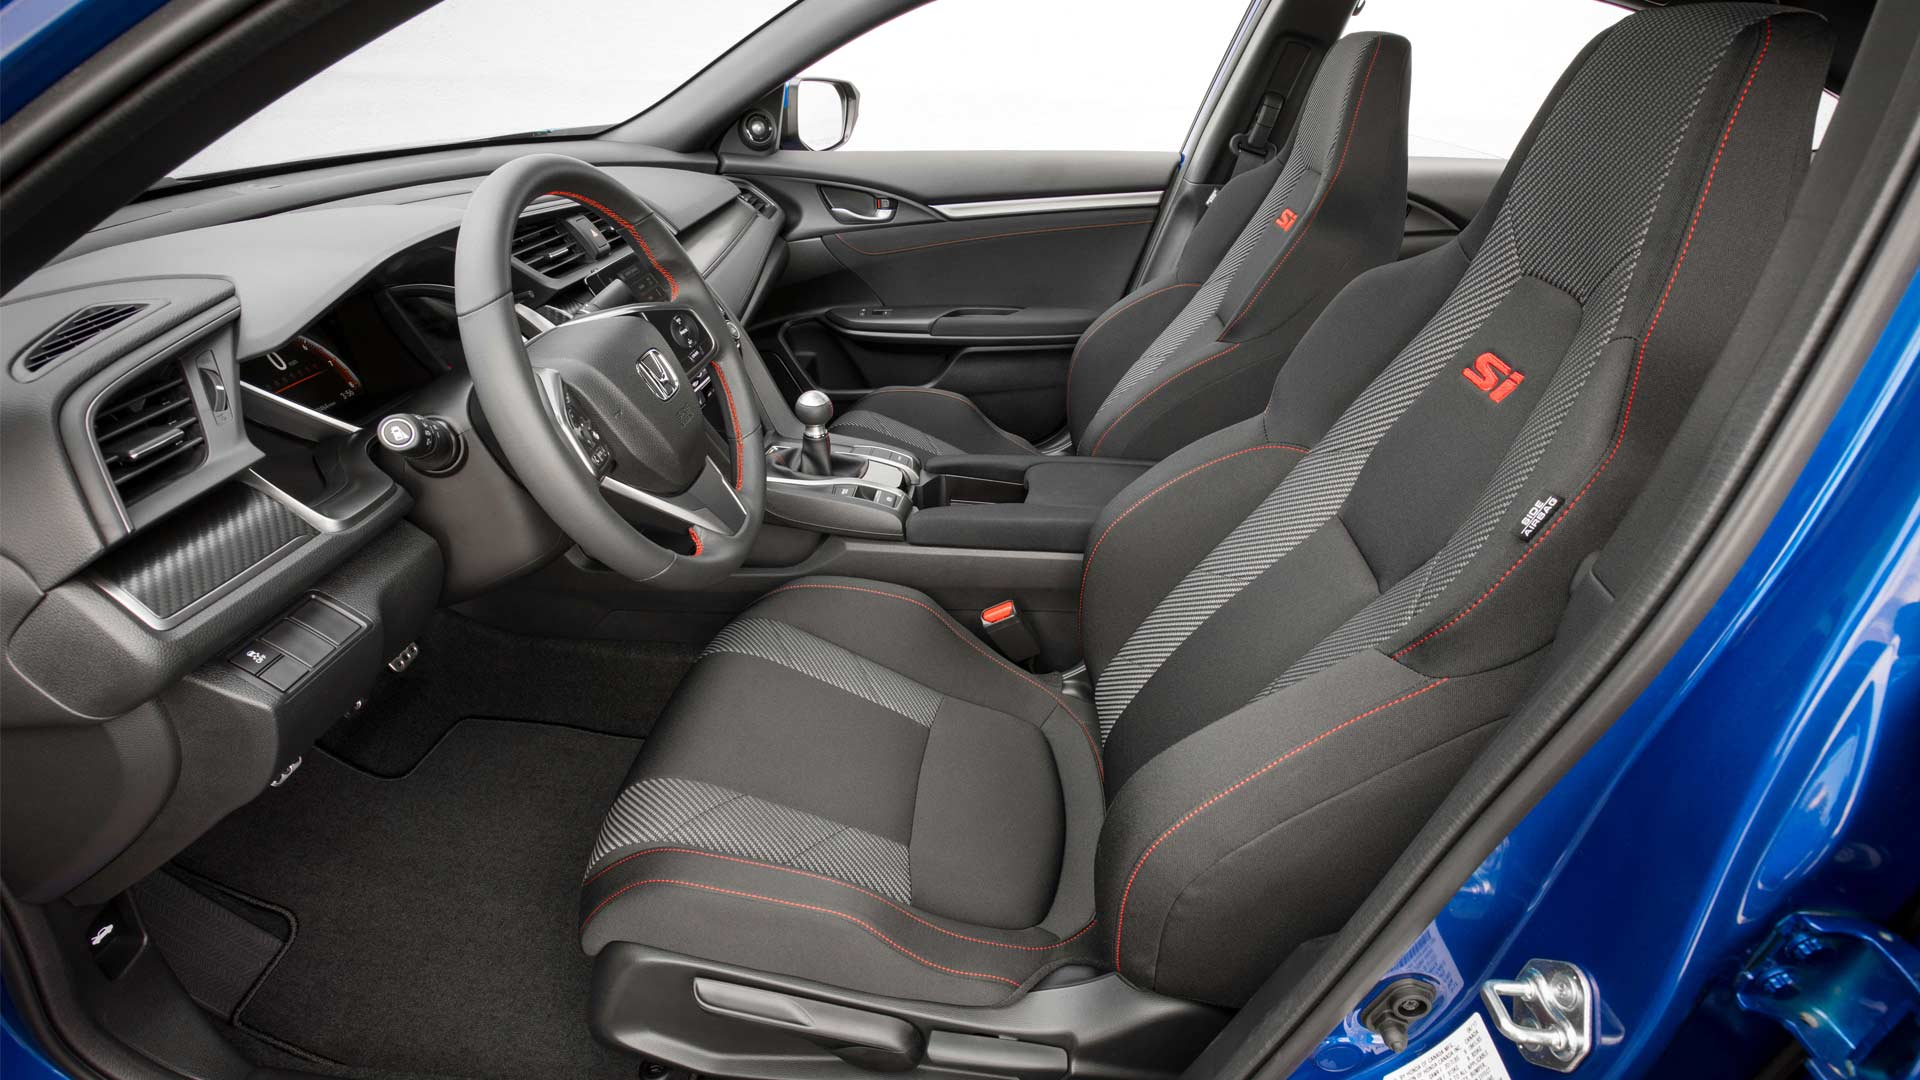 2019 honda civic si gets new colors interior - 2015 honda civic si interior lights ...